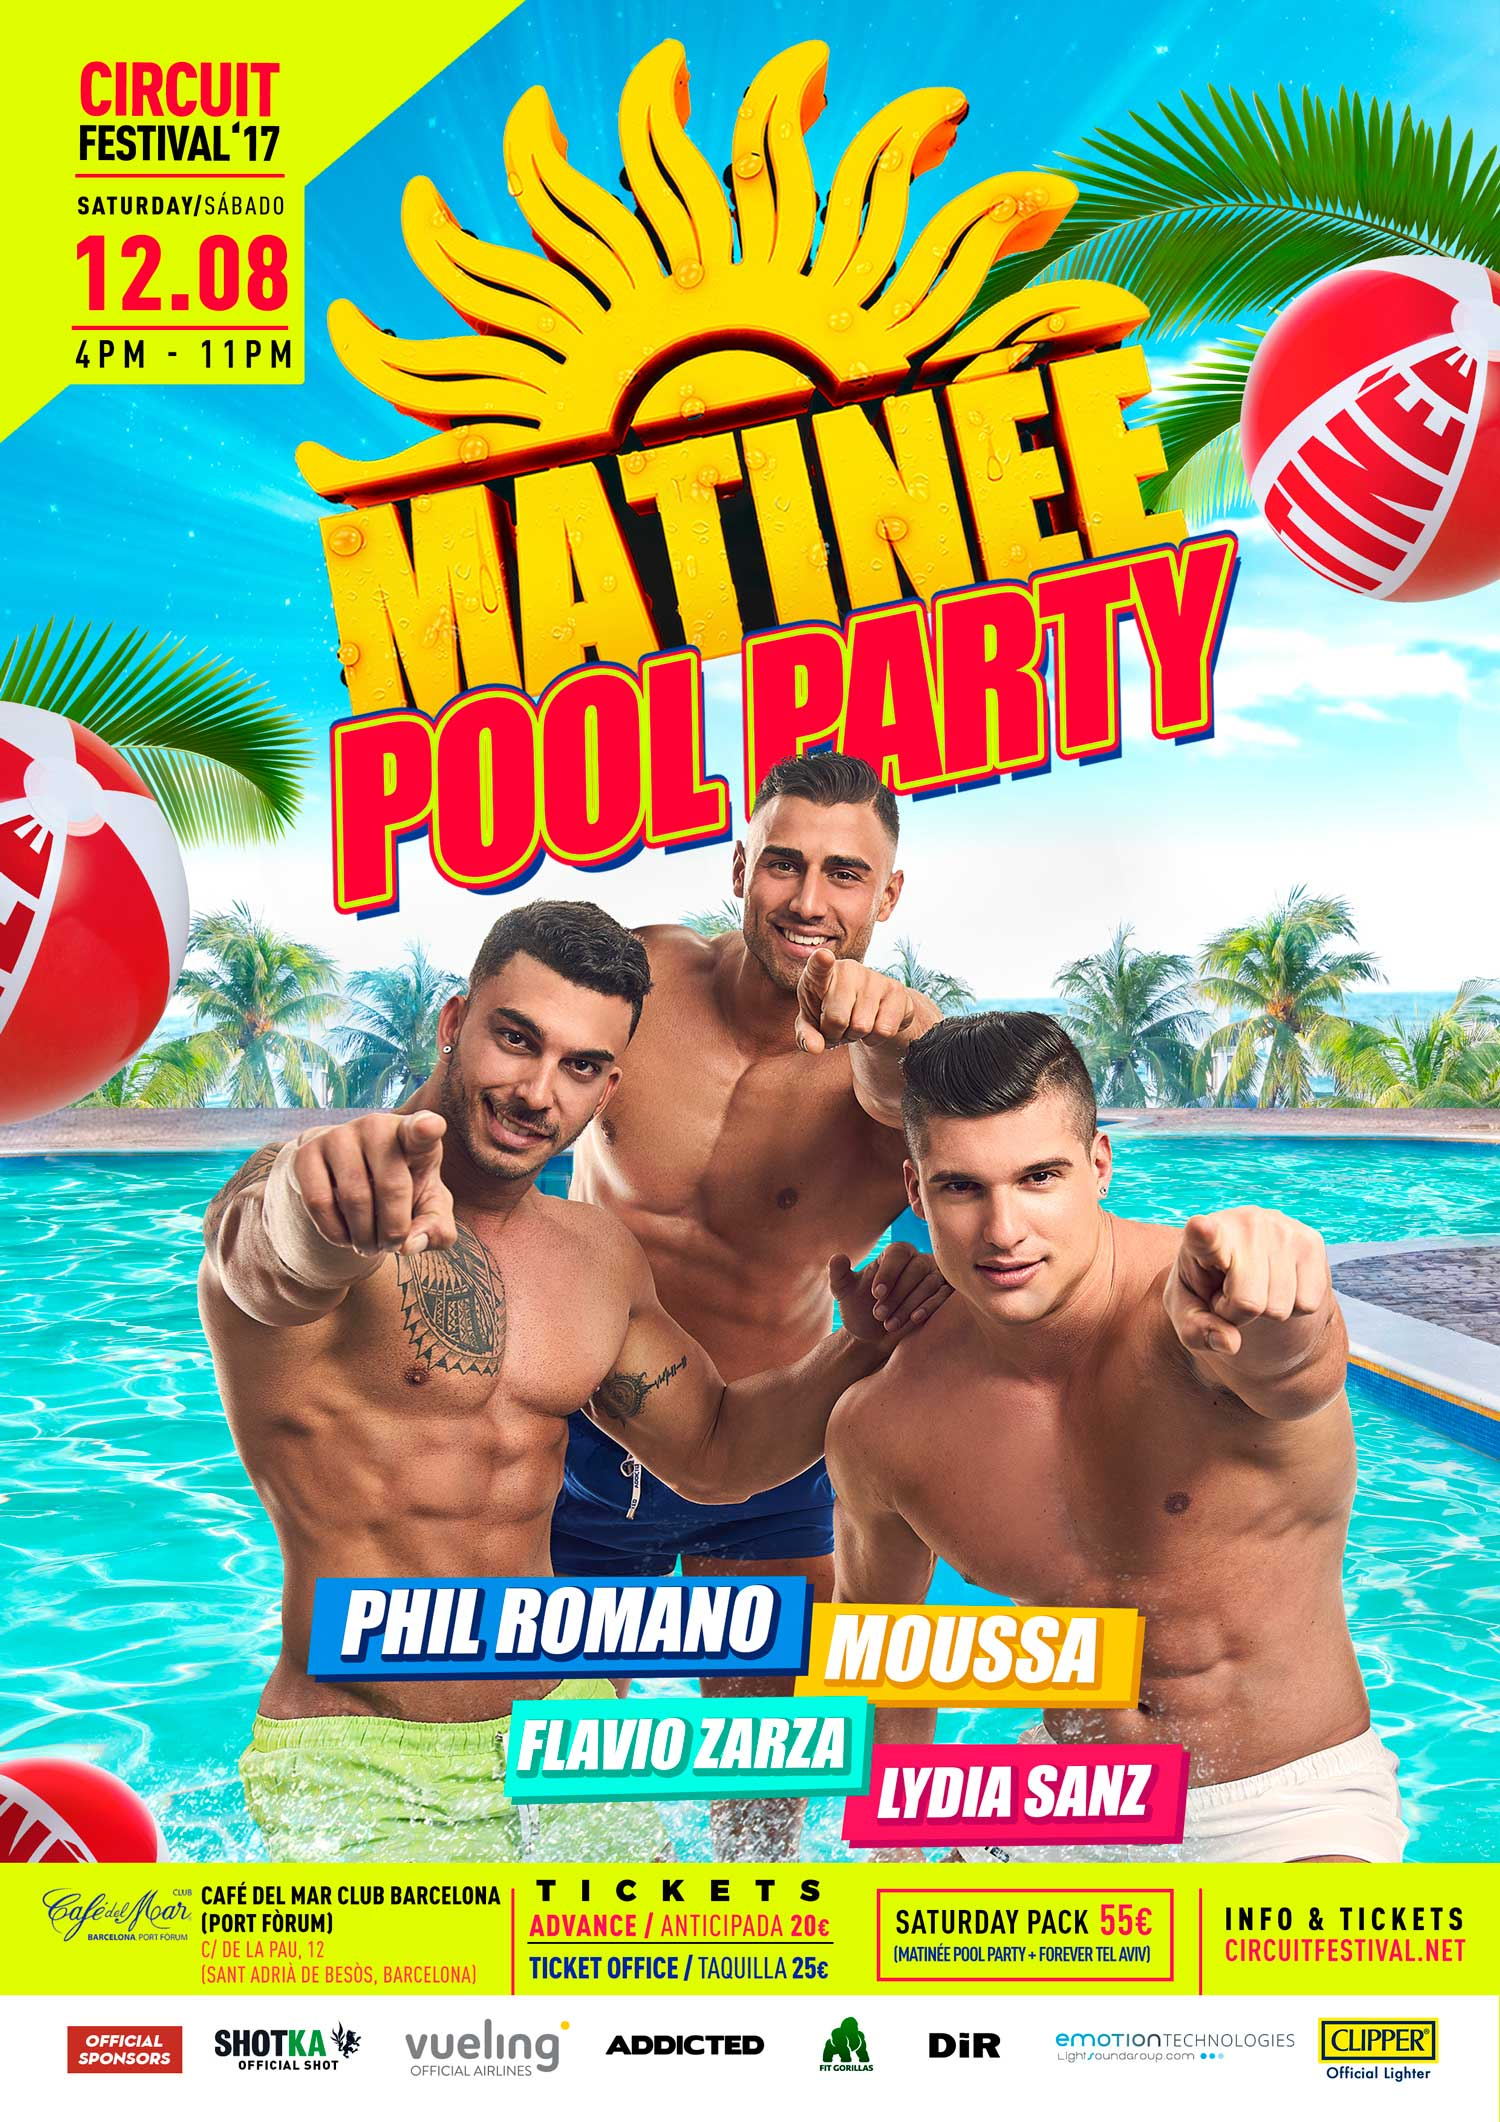 Circuit17_MAIN-POOL-PARTY_flyer_version-web-2 (1)